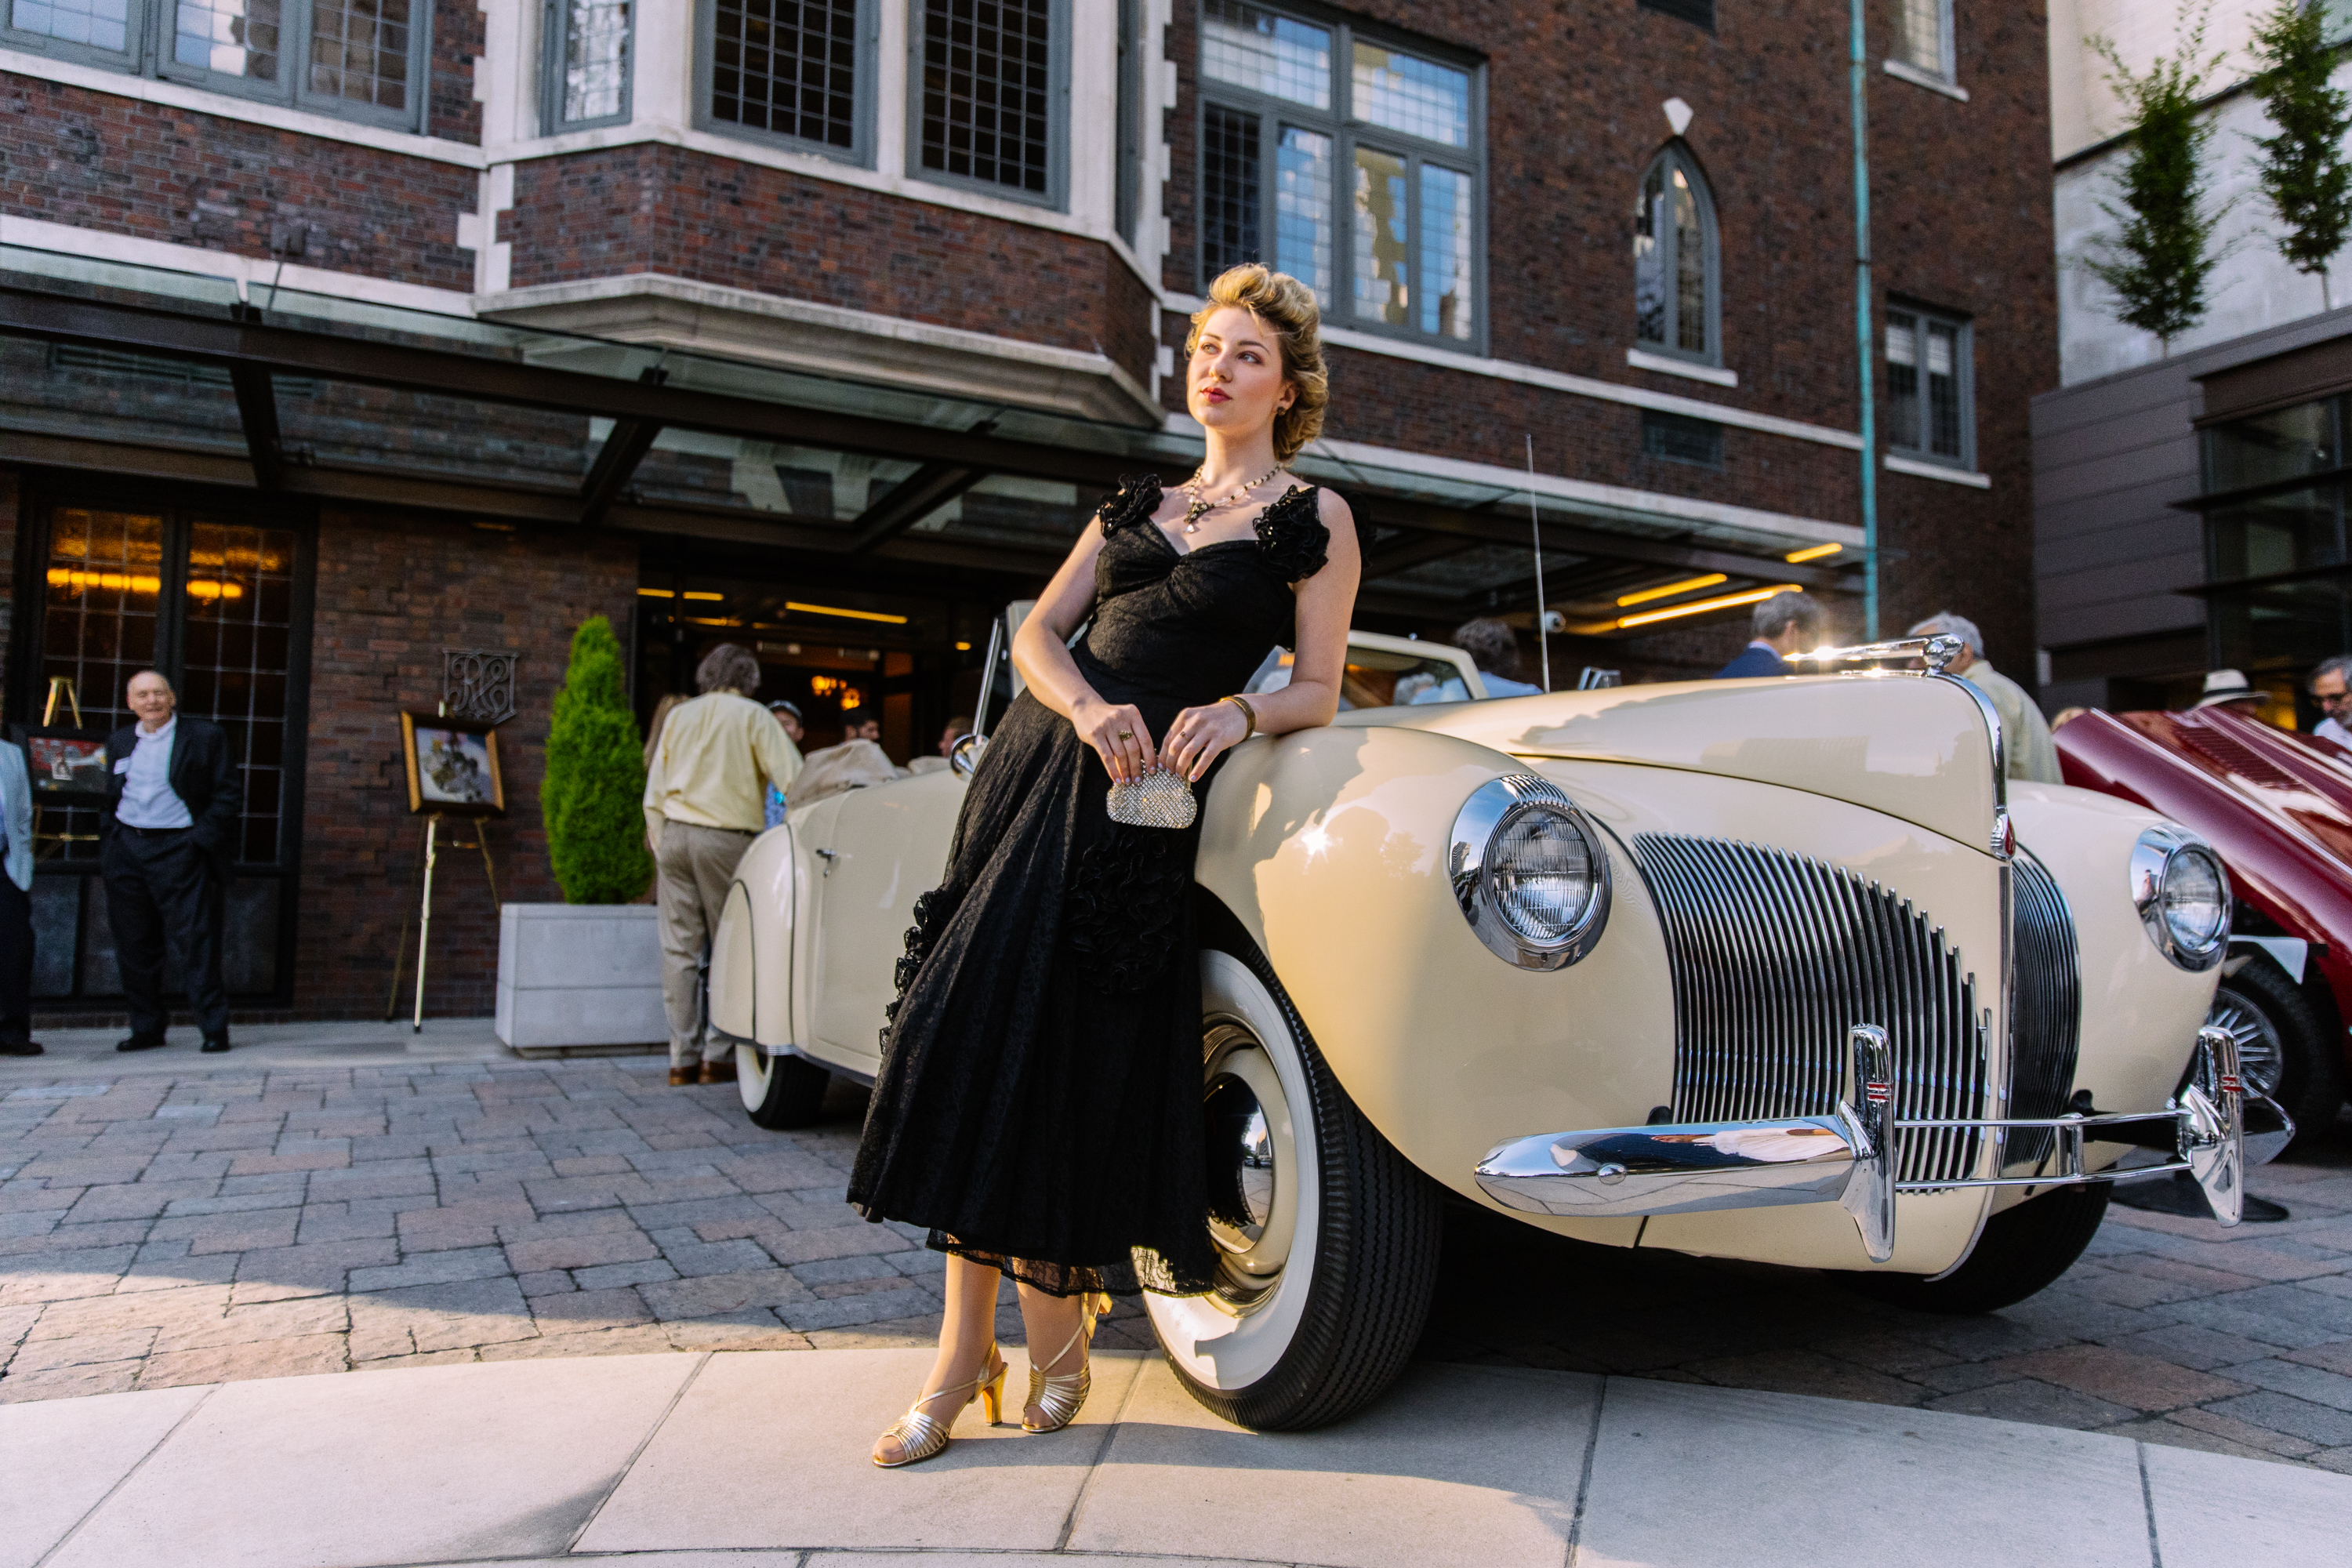 Seattle Goodwill volunteers model vintage fashion garments from the 1930s-1960s during the 'Classic Cars, Art, and Couture' event on Tuesday, July 16 at The Rainier Club. The Goodwill community engagement team matched clothing, shoes & accessories from Goodwill's Vintage Fashion Collection (VFC) with vintage cars. Goodwill's expansive VFC dates back to the 1850's. Artists from Gene Juarez Academy and Salons provided hair and makeup. (Photos: Seattle Goodwill)